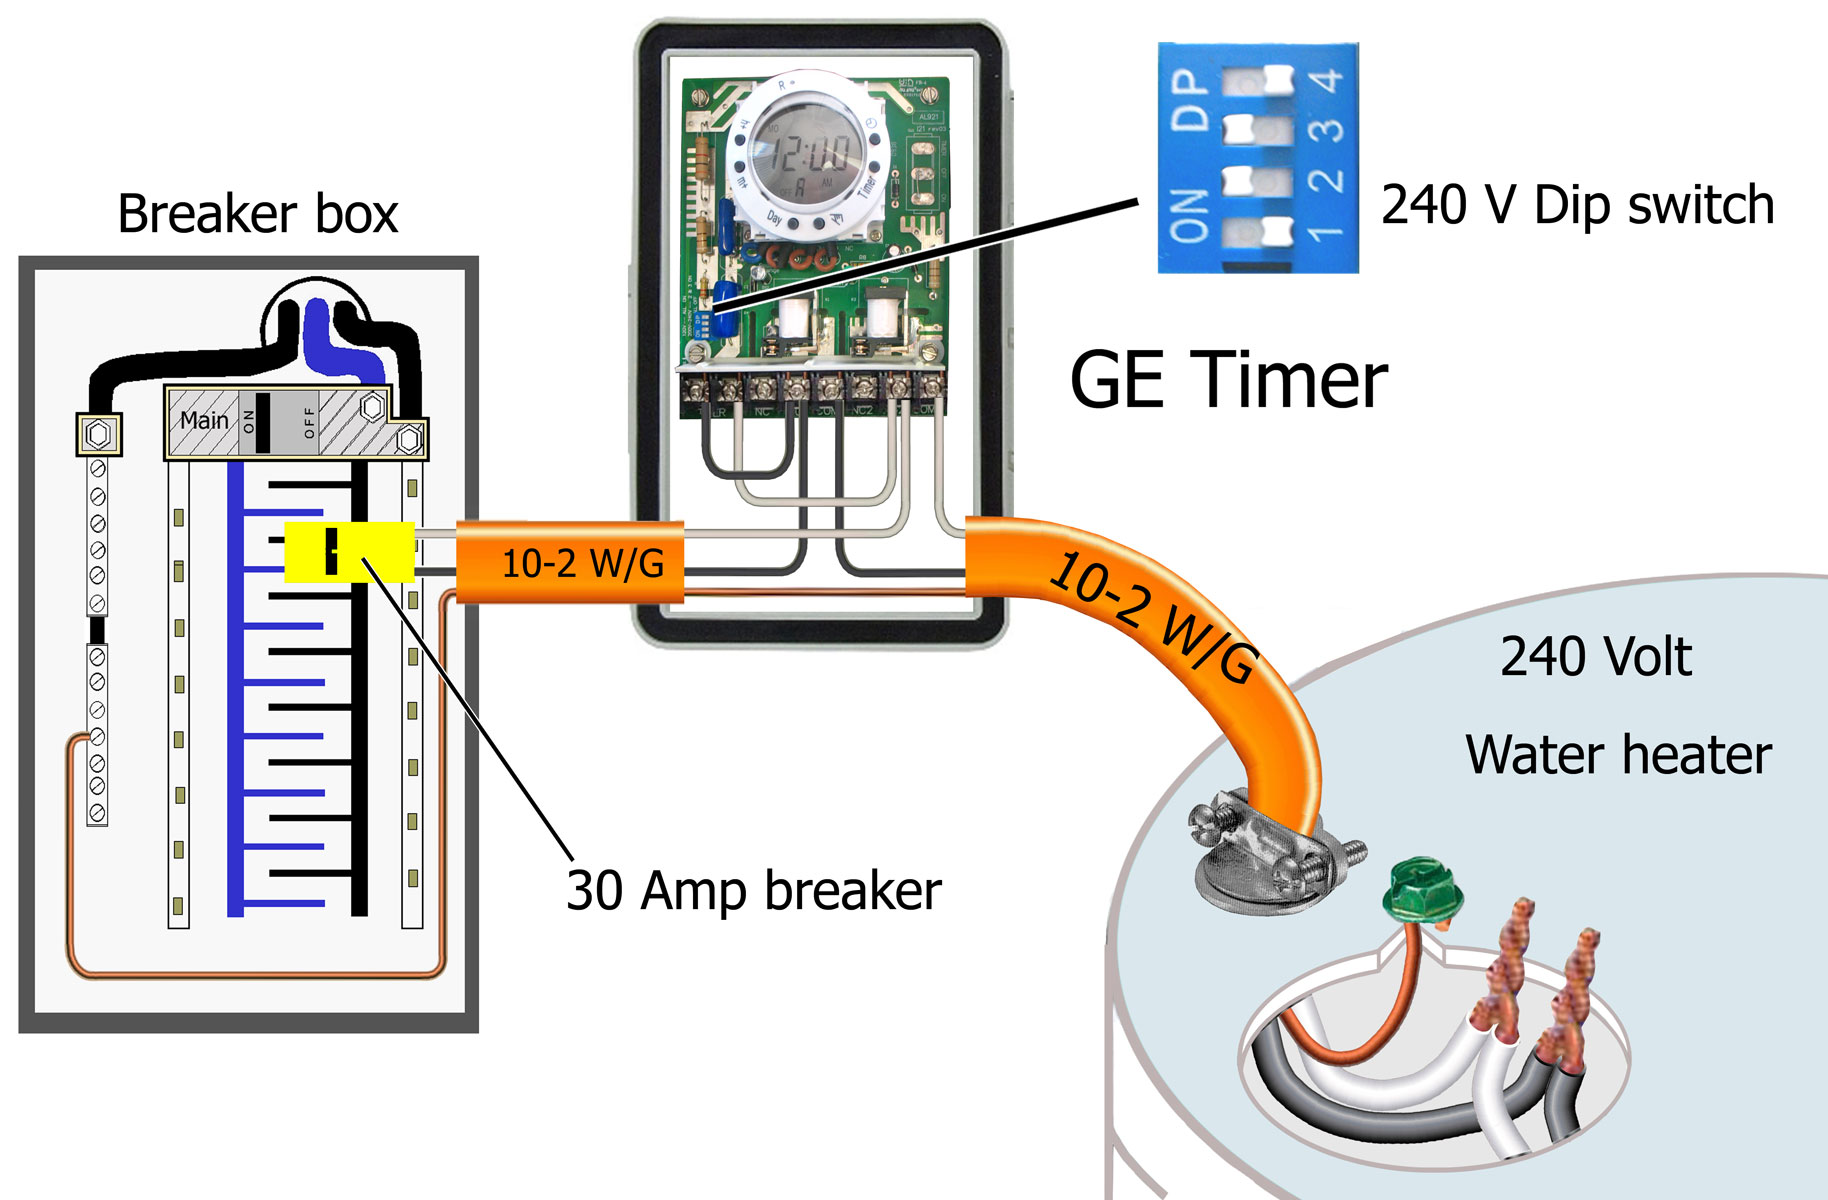 GE to water heater 500a how to wire ge 15136 timer wiring diagram for electric water heater at bakdesigns.co